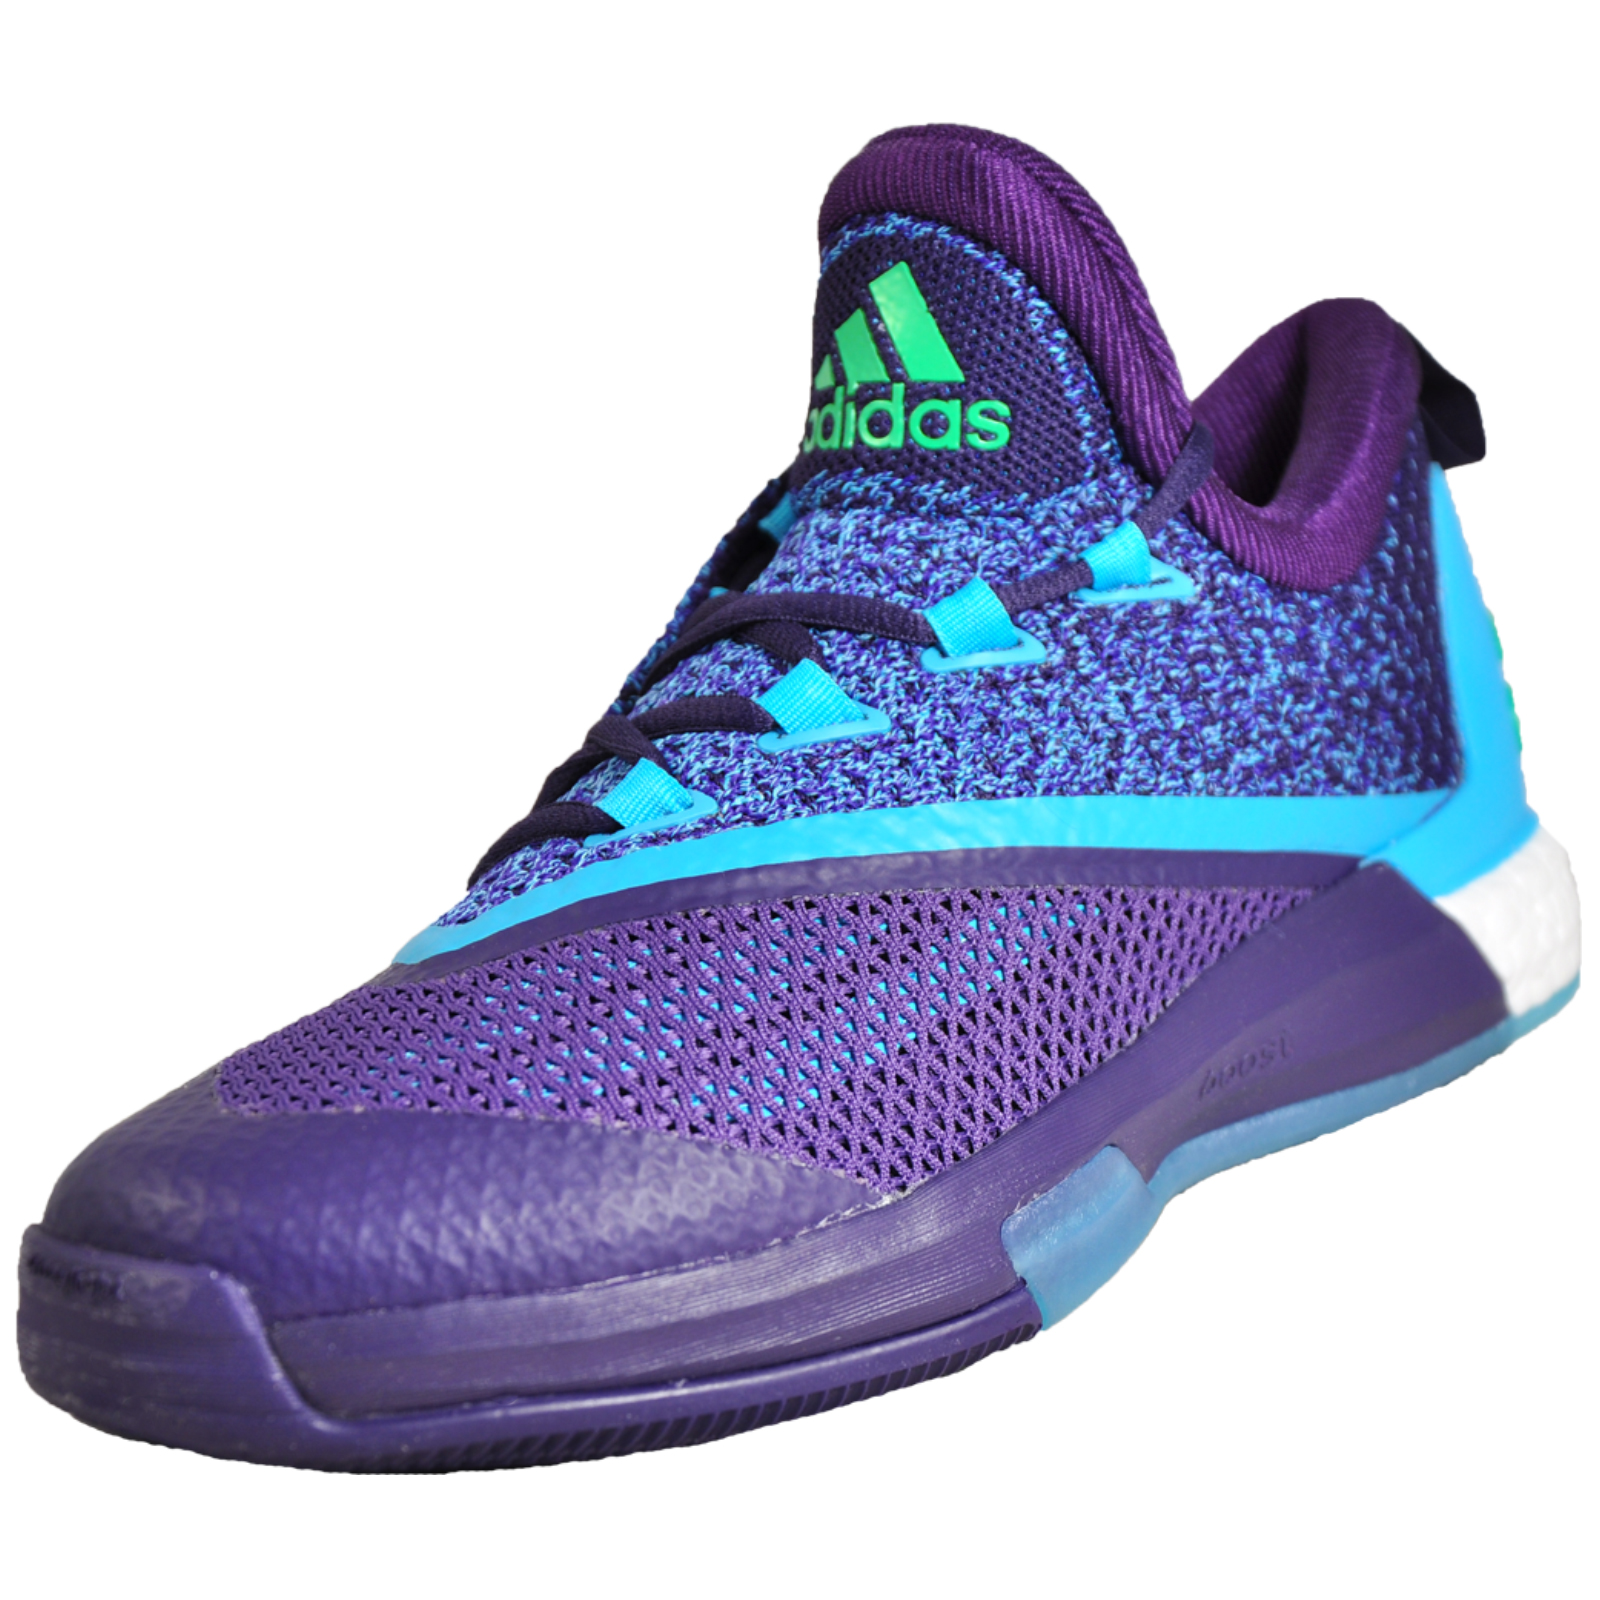 f7788965a6e2 Adidas Crazylight Boost 2.5 Low Men s Premium Performance Court Basketball  Trainers